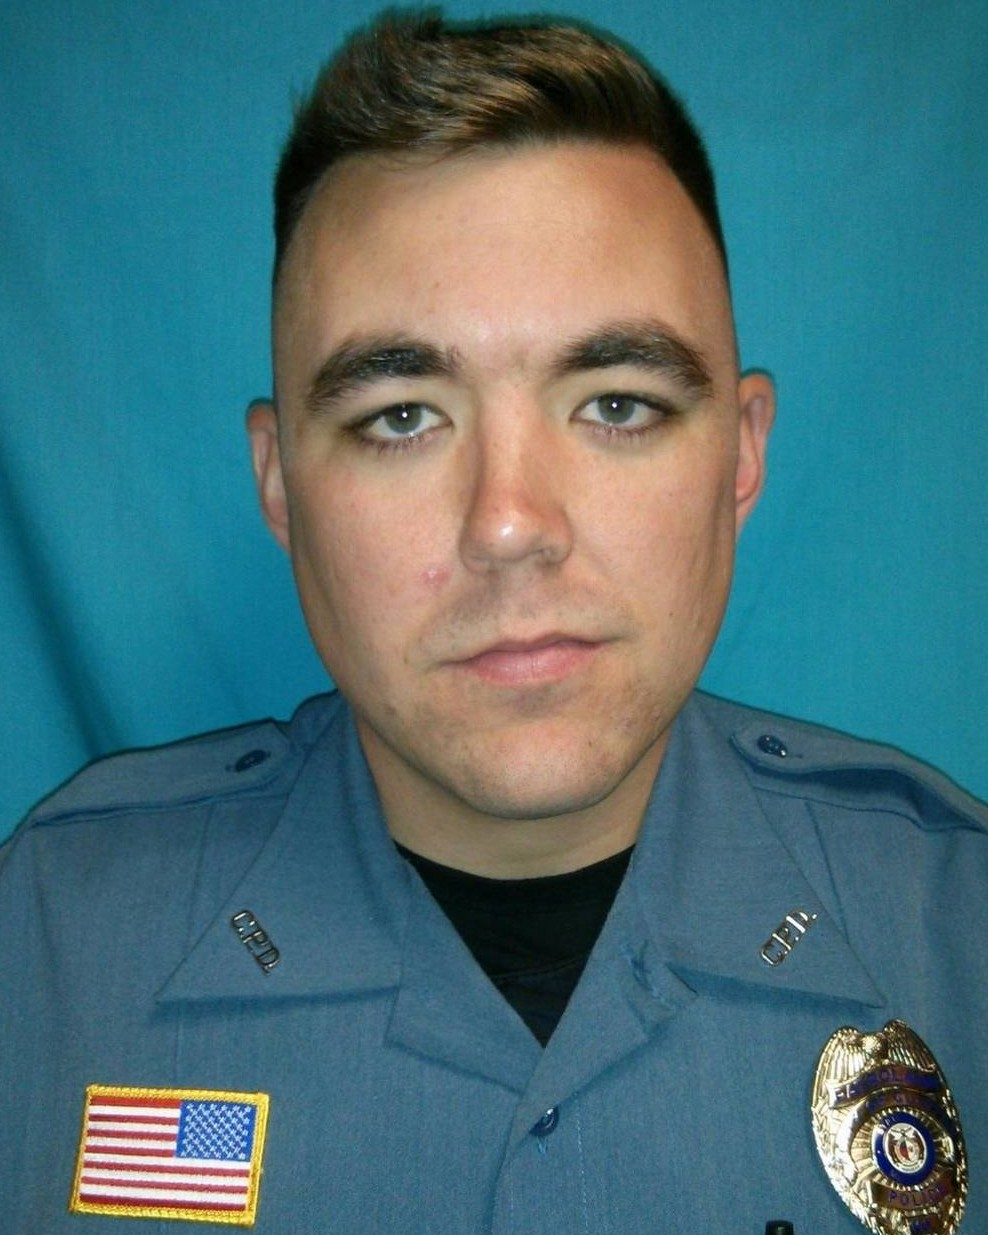 Police Officer Christopher Ryan Morton | Clinton Police Department, Missouri